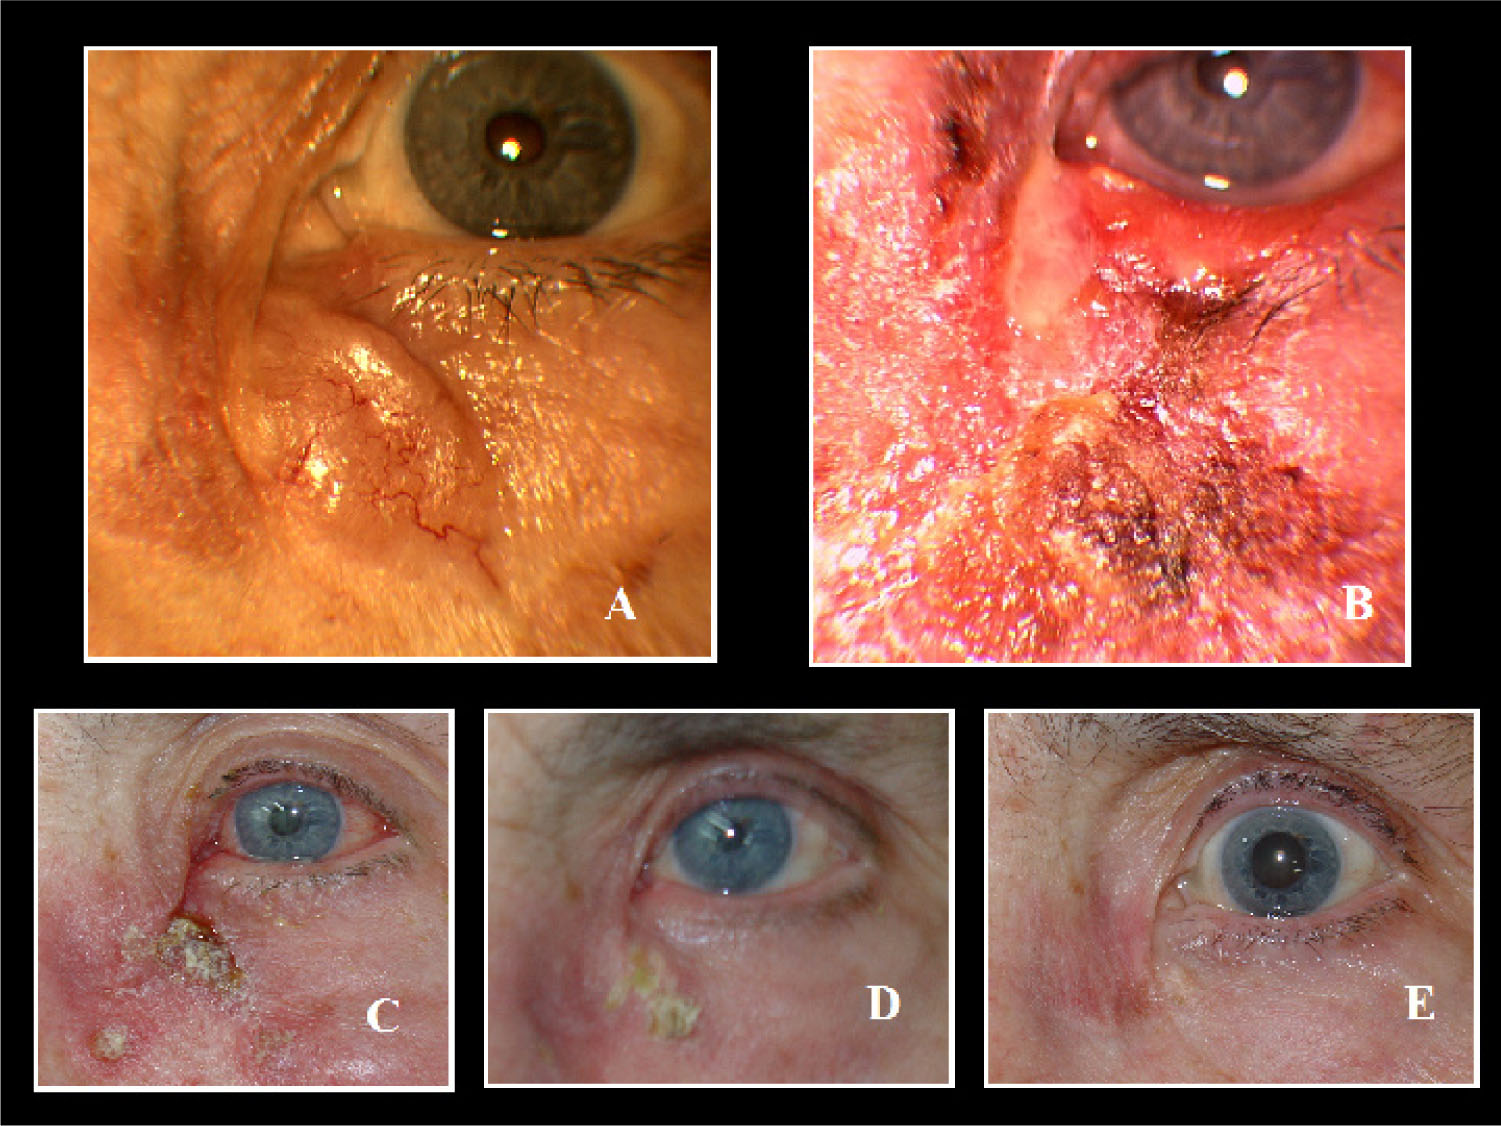 (A) Recurrent Nodular BCC with Superficial Teleangiectasic Vessels at the Nasogenian Groove. (B) Extensive Erythema and Crusting, Retractile Medial Ectropion and Conjuctival Mucous Secretions After Two Weeks of Treatment. (C) Diminution of the Severe Reaction in the Fourth Week of Treatment. (D) Persistence of a Crust in the Primitive Lesion and Clearance of the BCC After Six Weeks. (E) Excellent Clinical and Cosmetic Outcomes Six Months After Treatment Suspension.